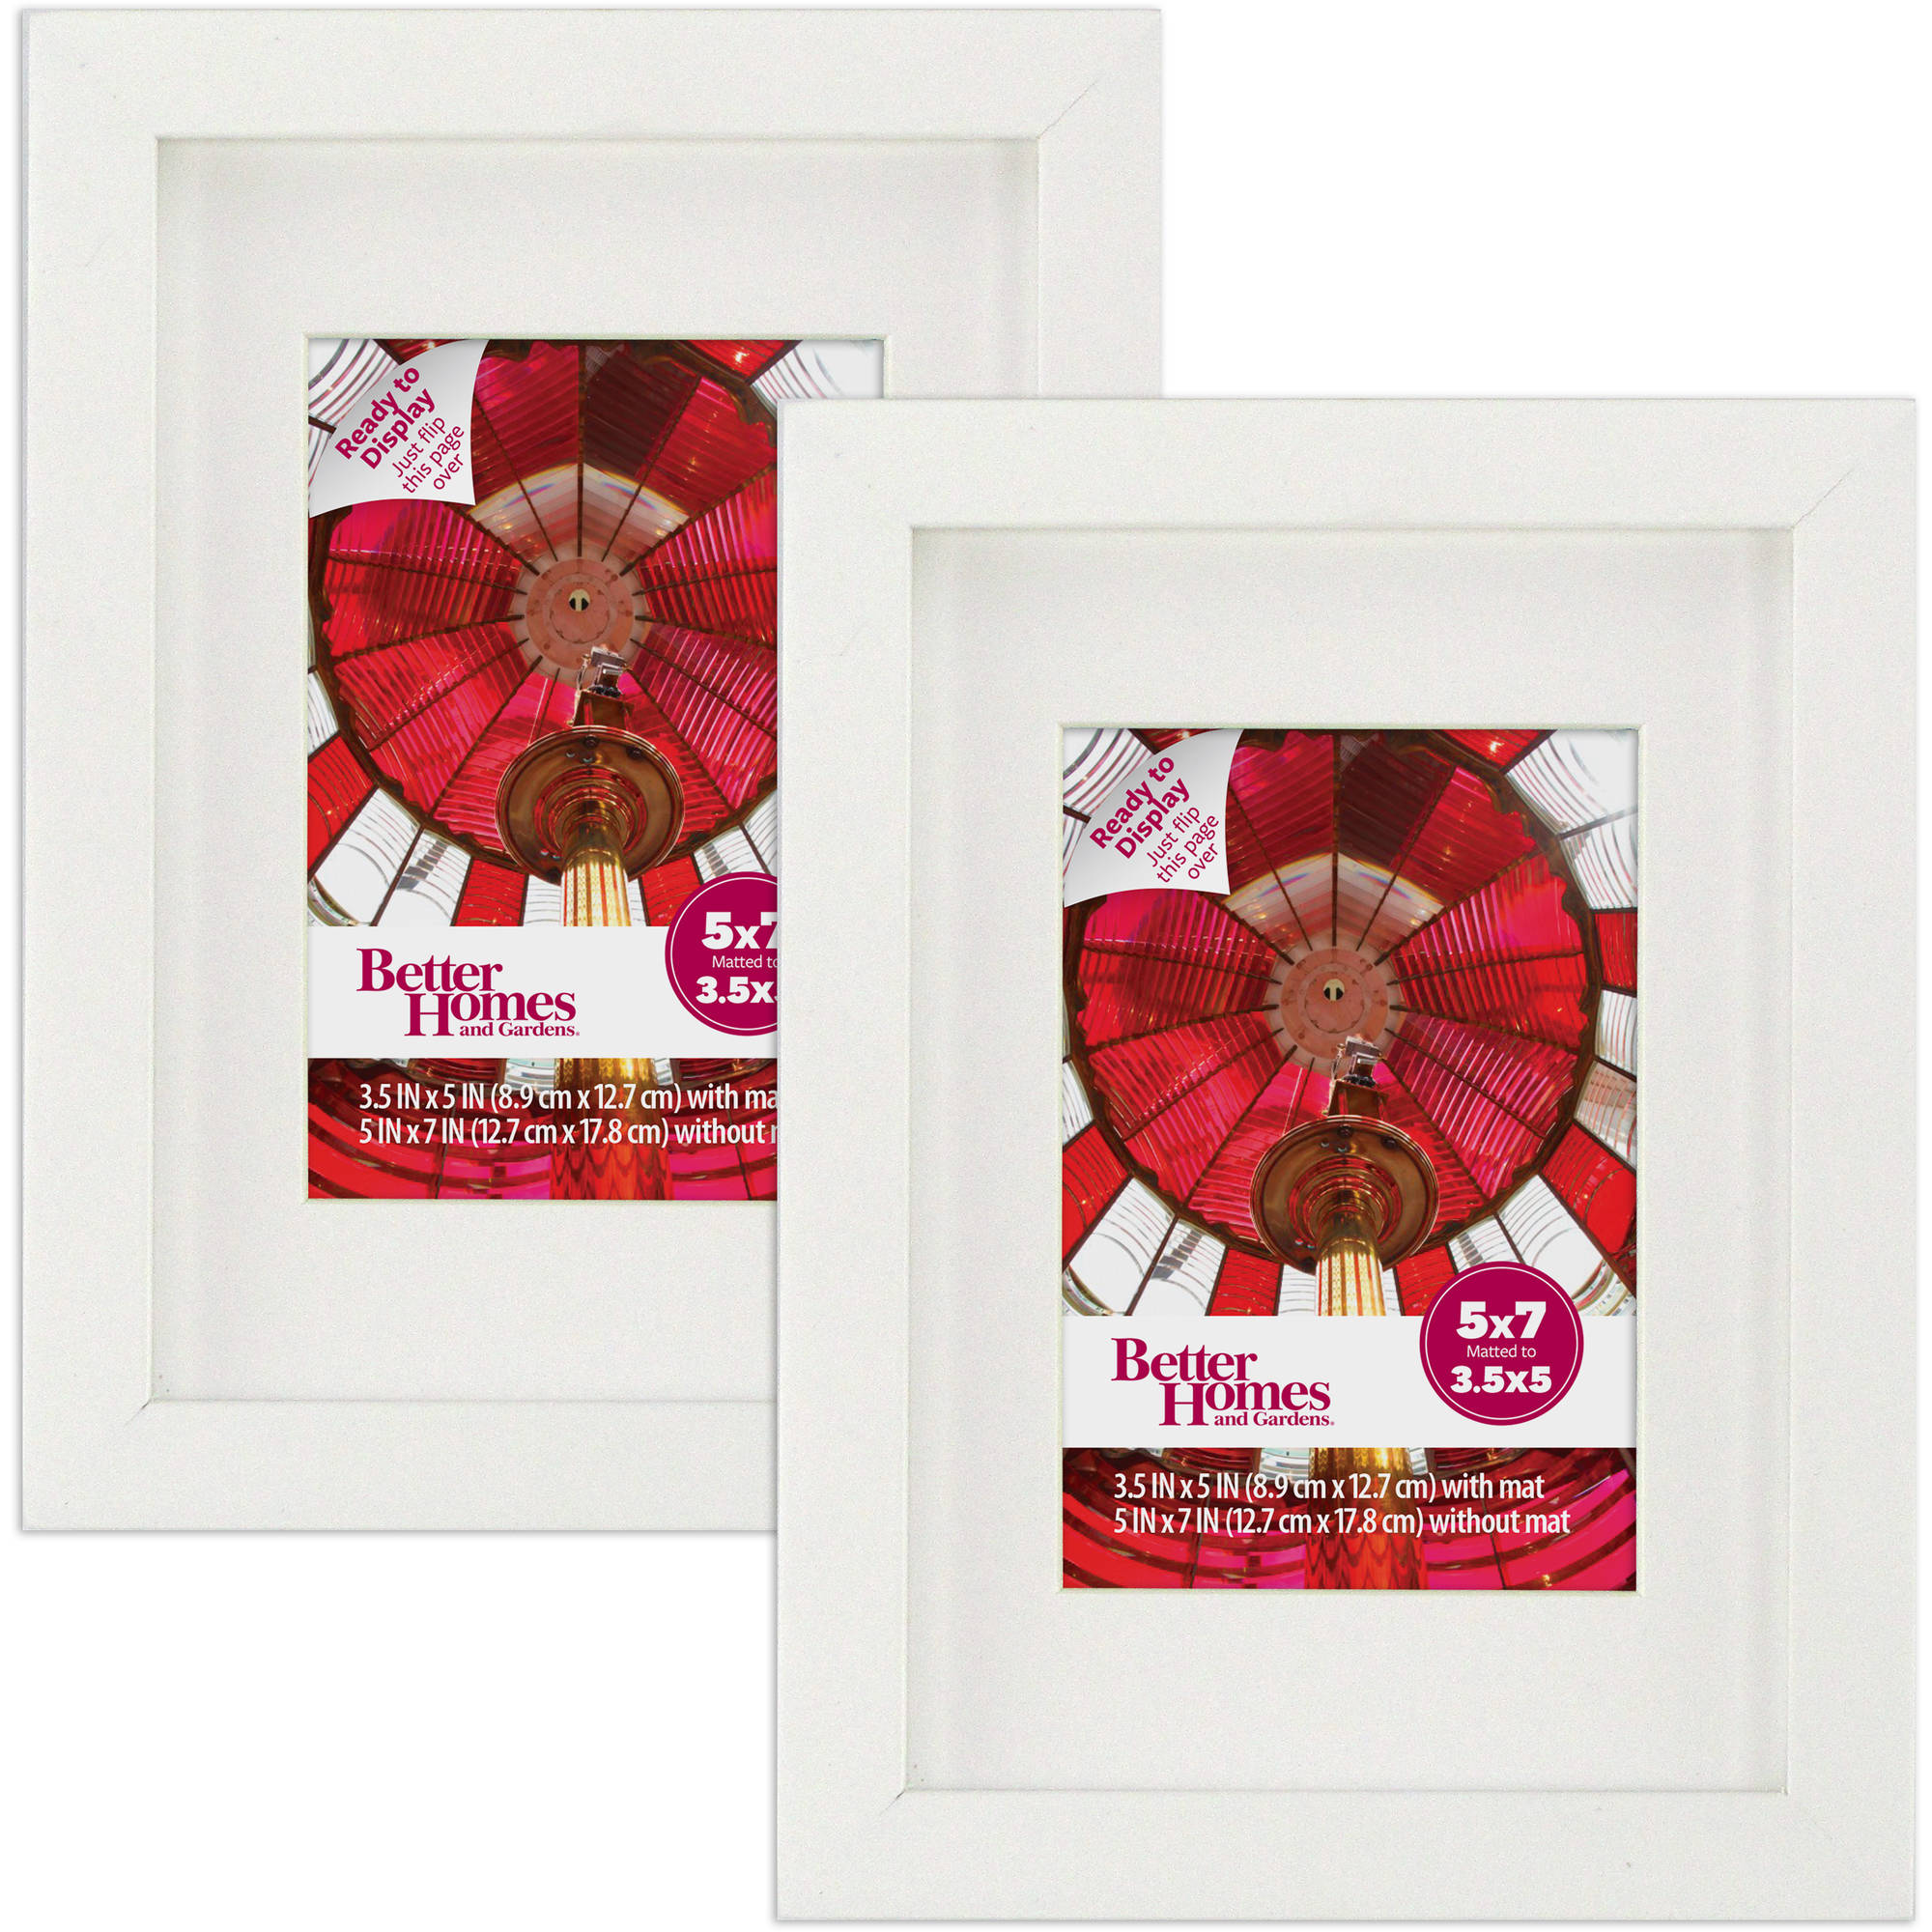 Better Homes and Gardens 5x7 Frame, Set of 2 - White Finish ...